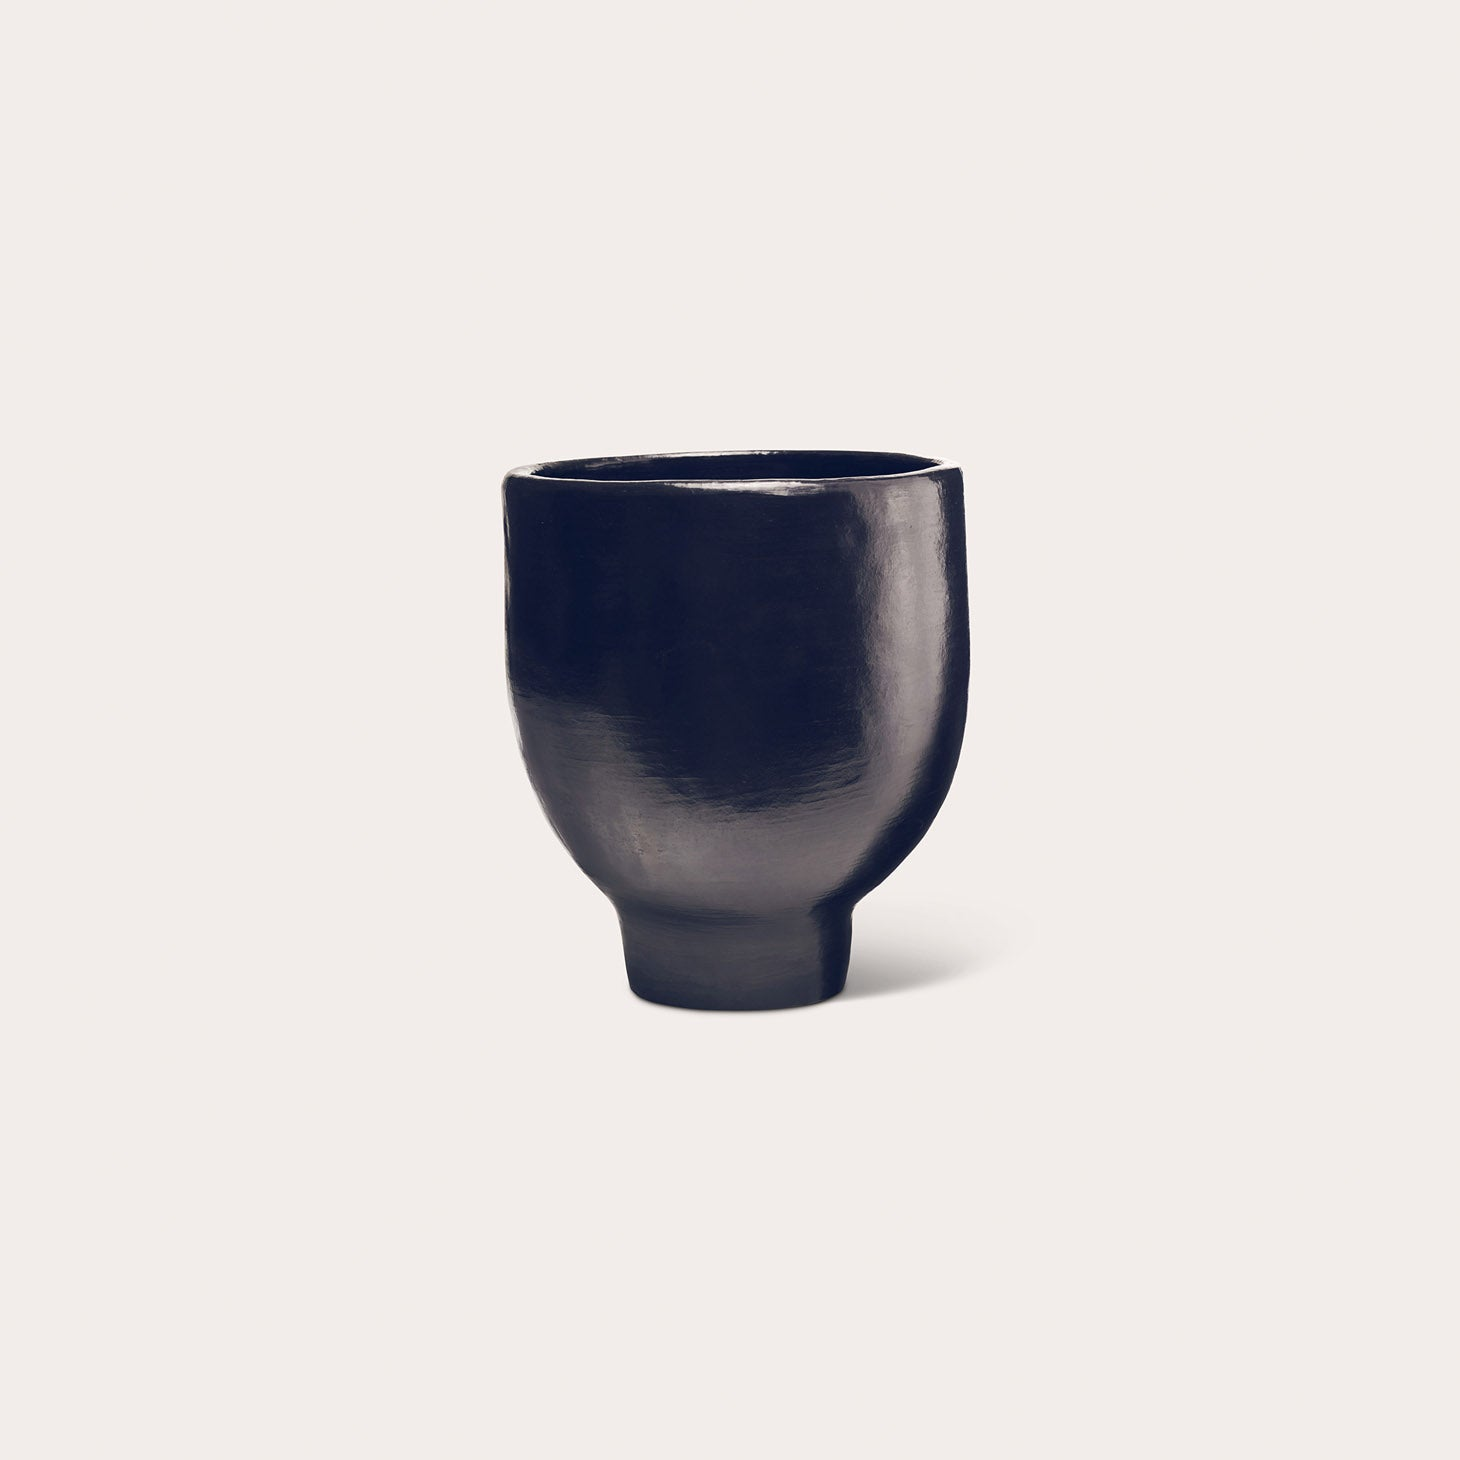 Barro Pot Accessories Sebastian Herkner Designer Furniture Sku: 803-100-10000